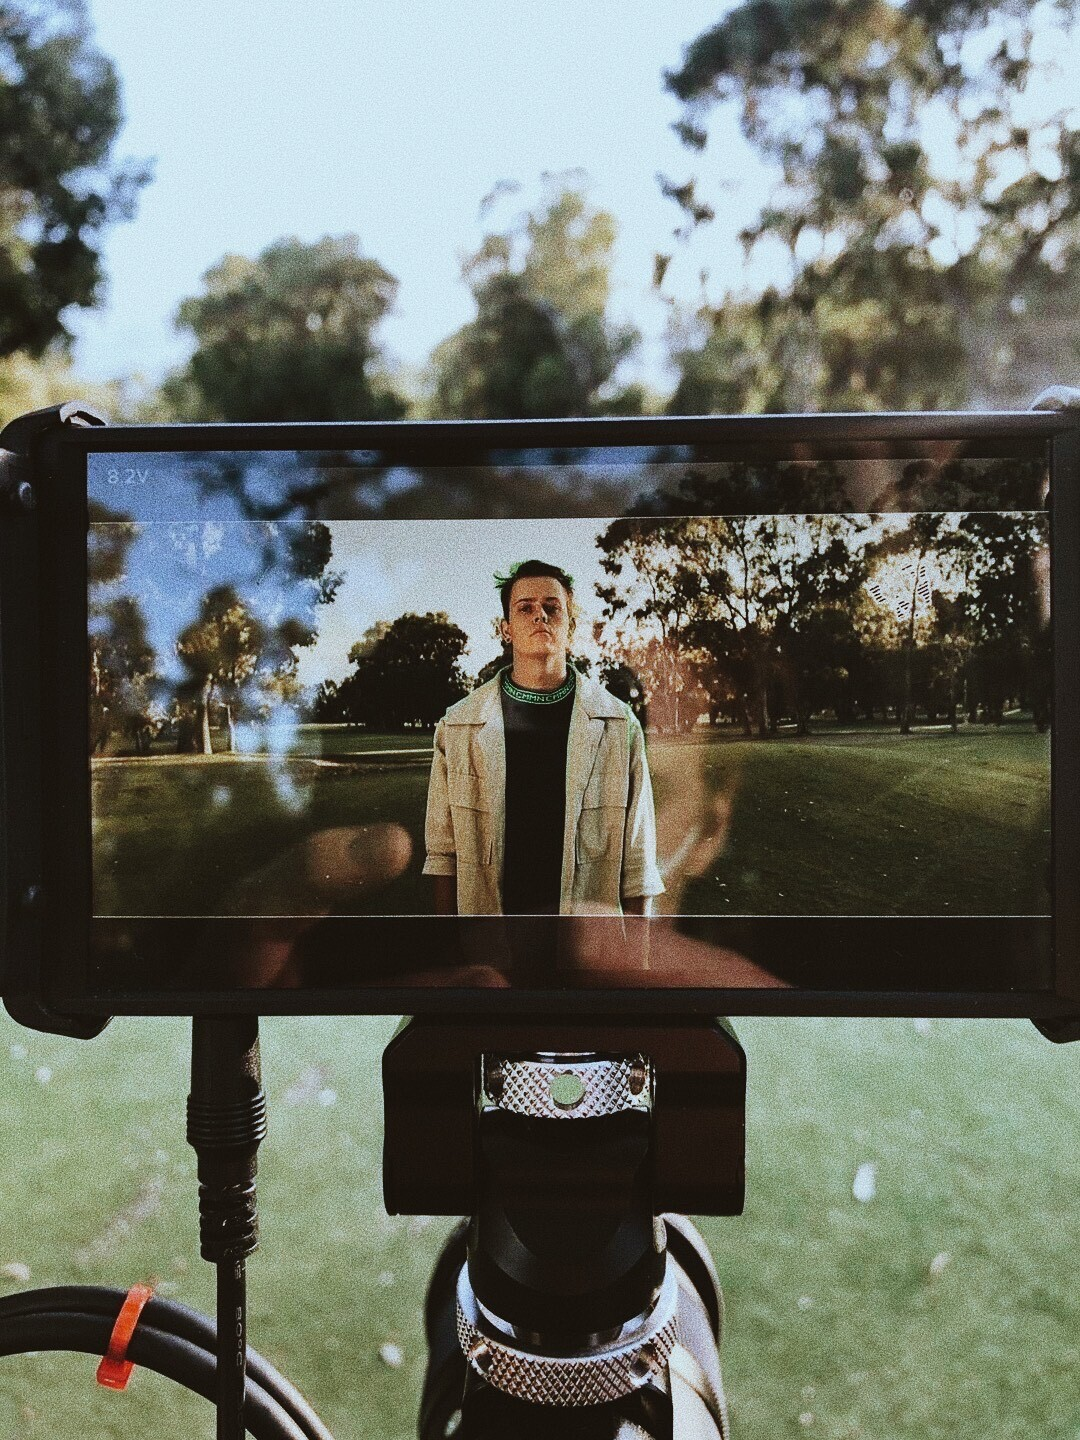 Photo of camera LCD screen showing a still of JOSHUA in a green field.